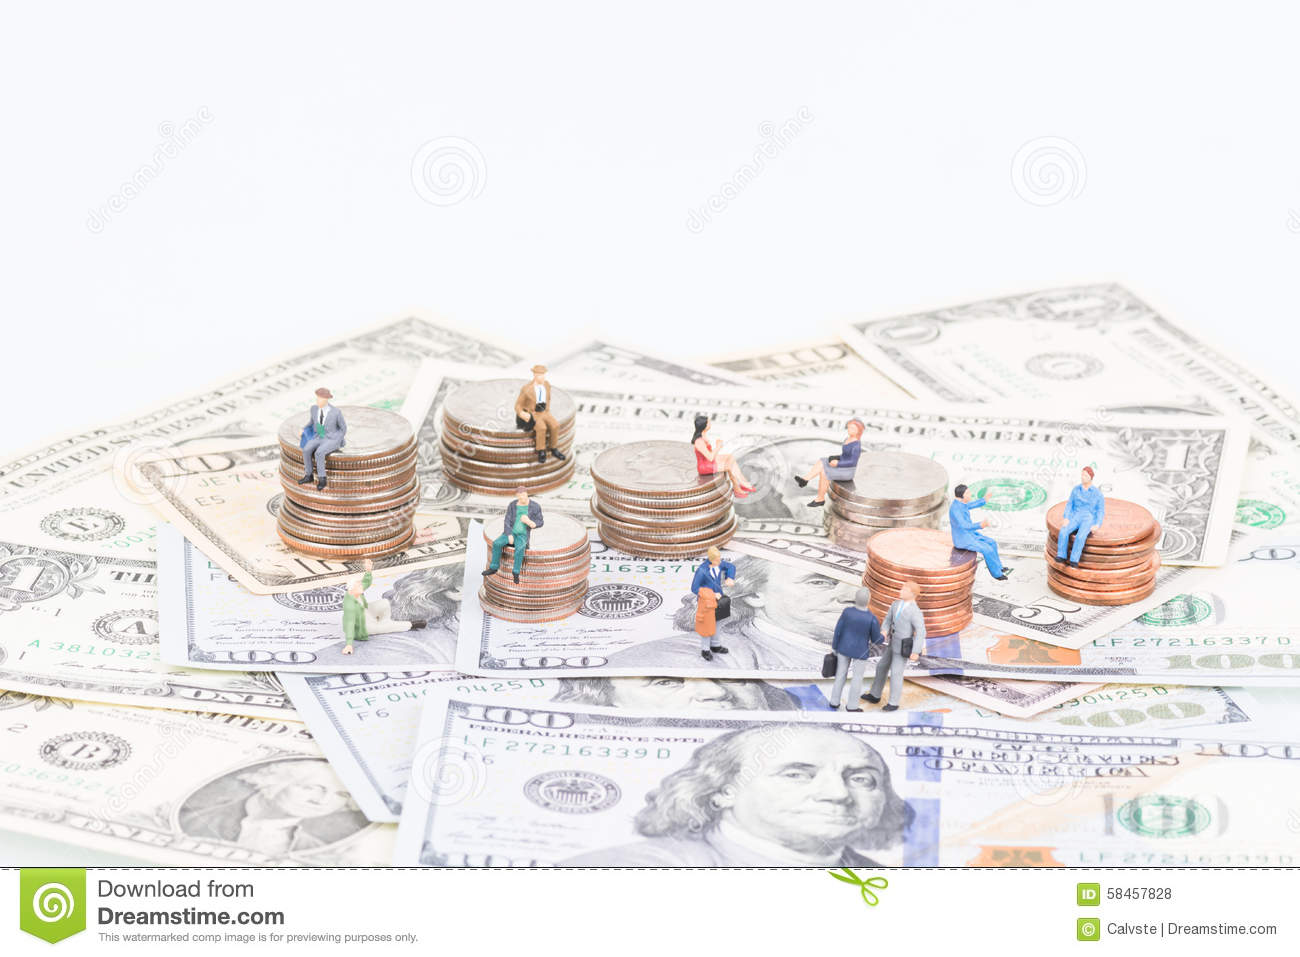 Miniature people on the coins and banknotes